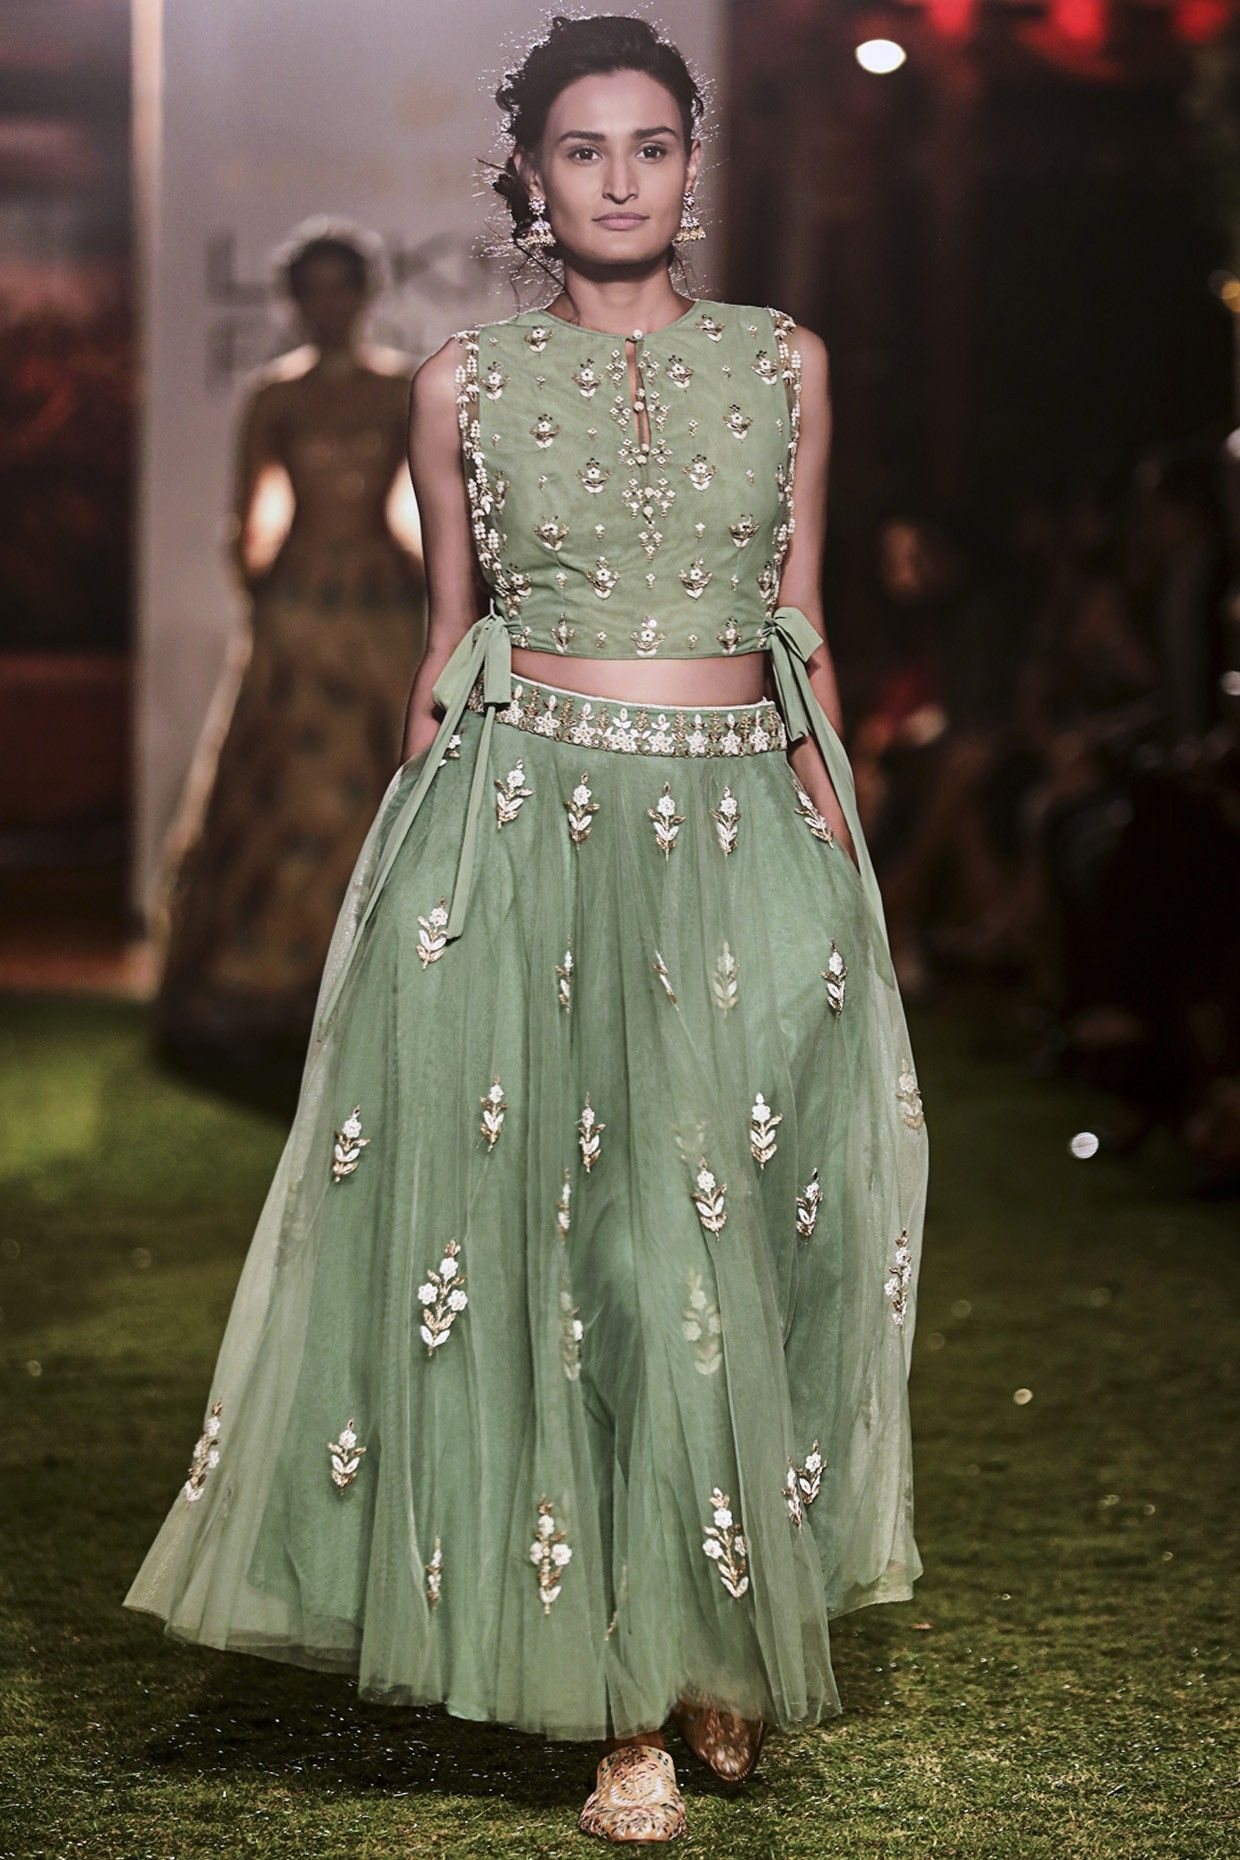 f48b7abc2 ANITA DONGRE Sage Green Embroidered Crop Top and Skirt Set. Shop Now!  #anitadogre